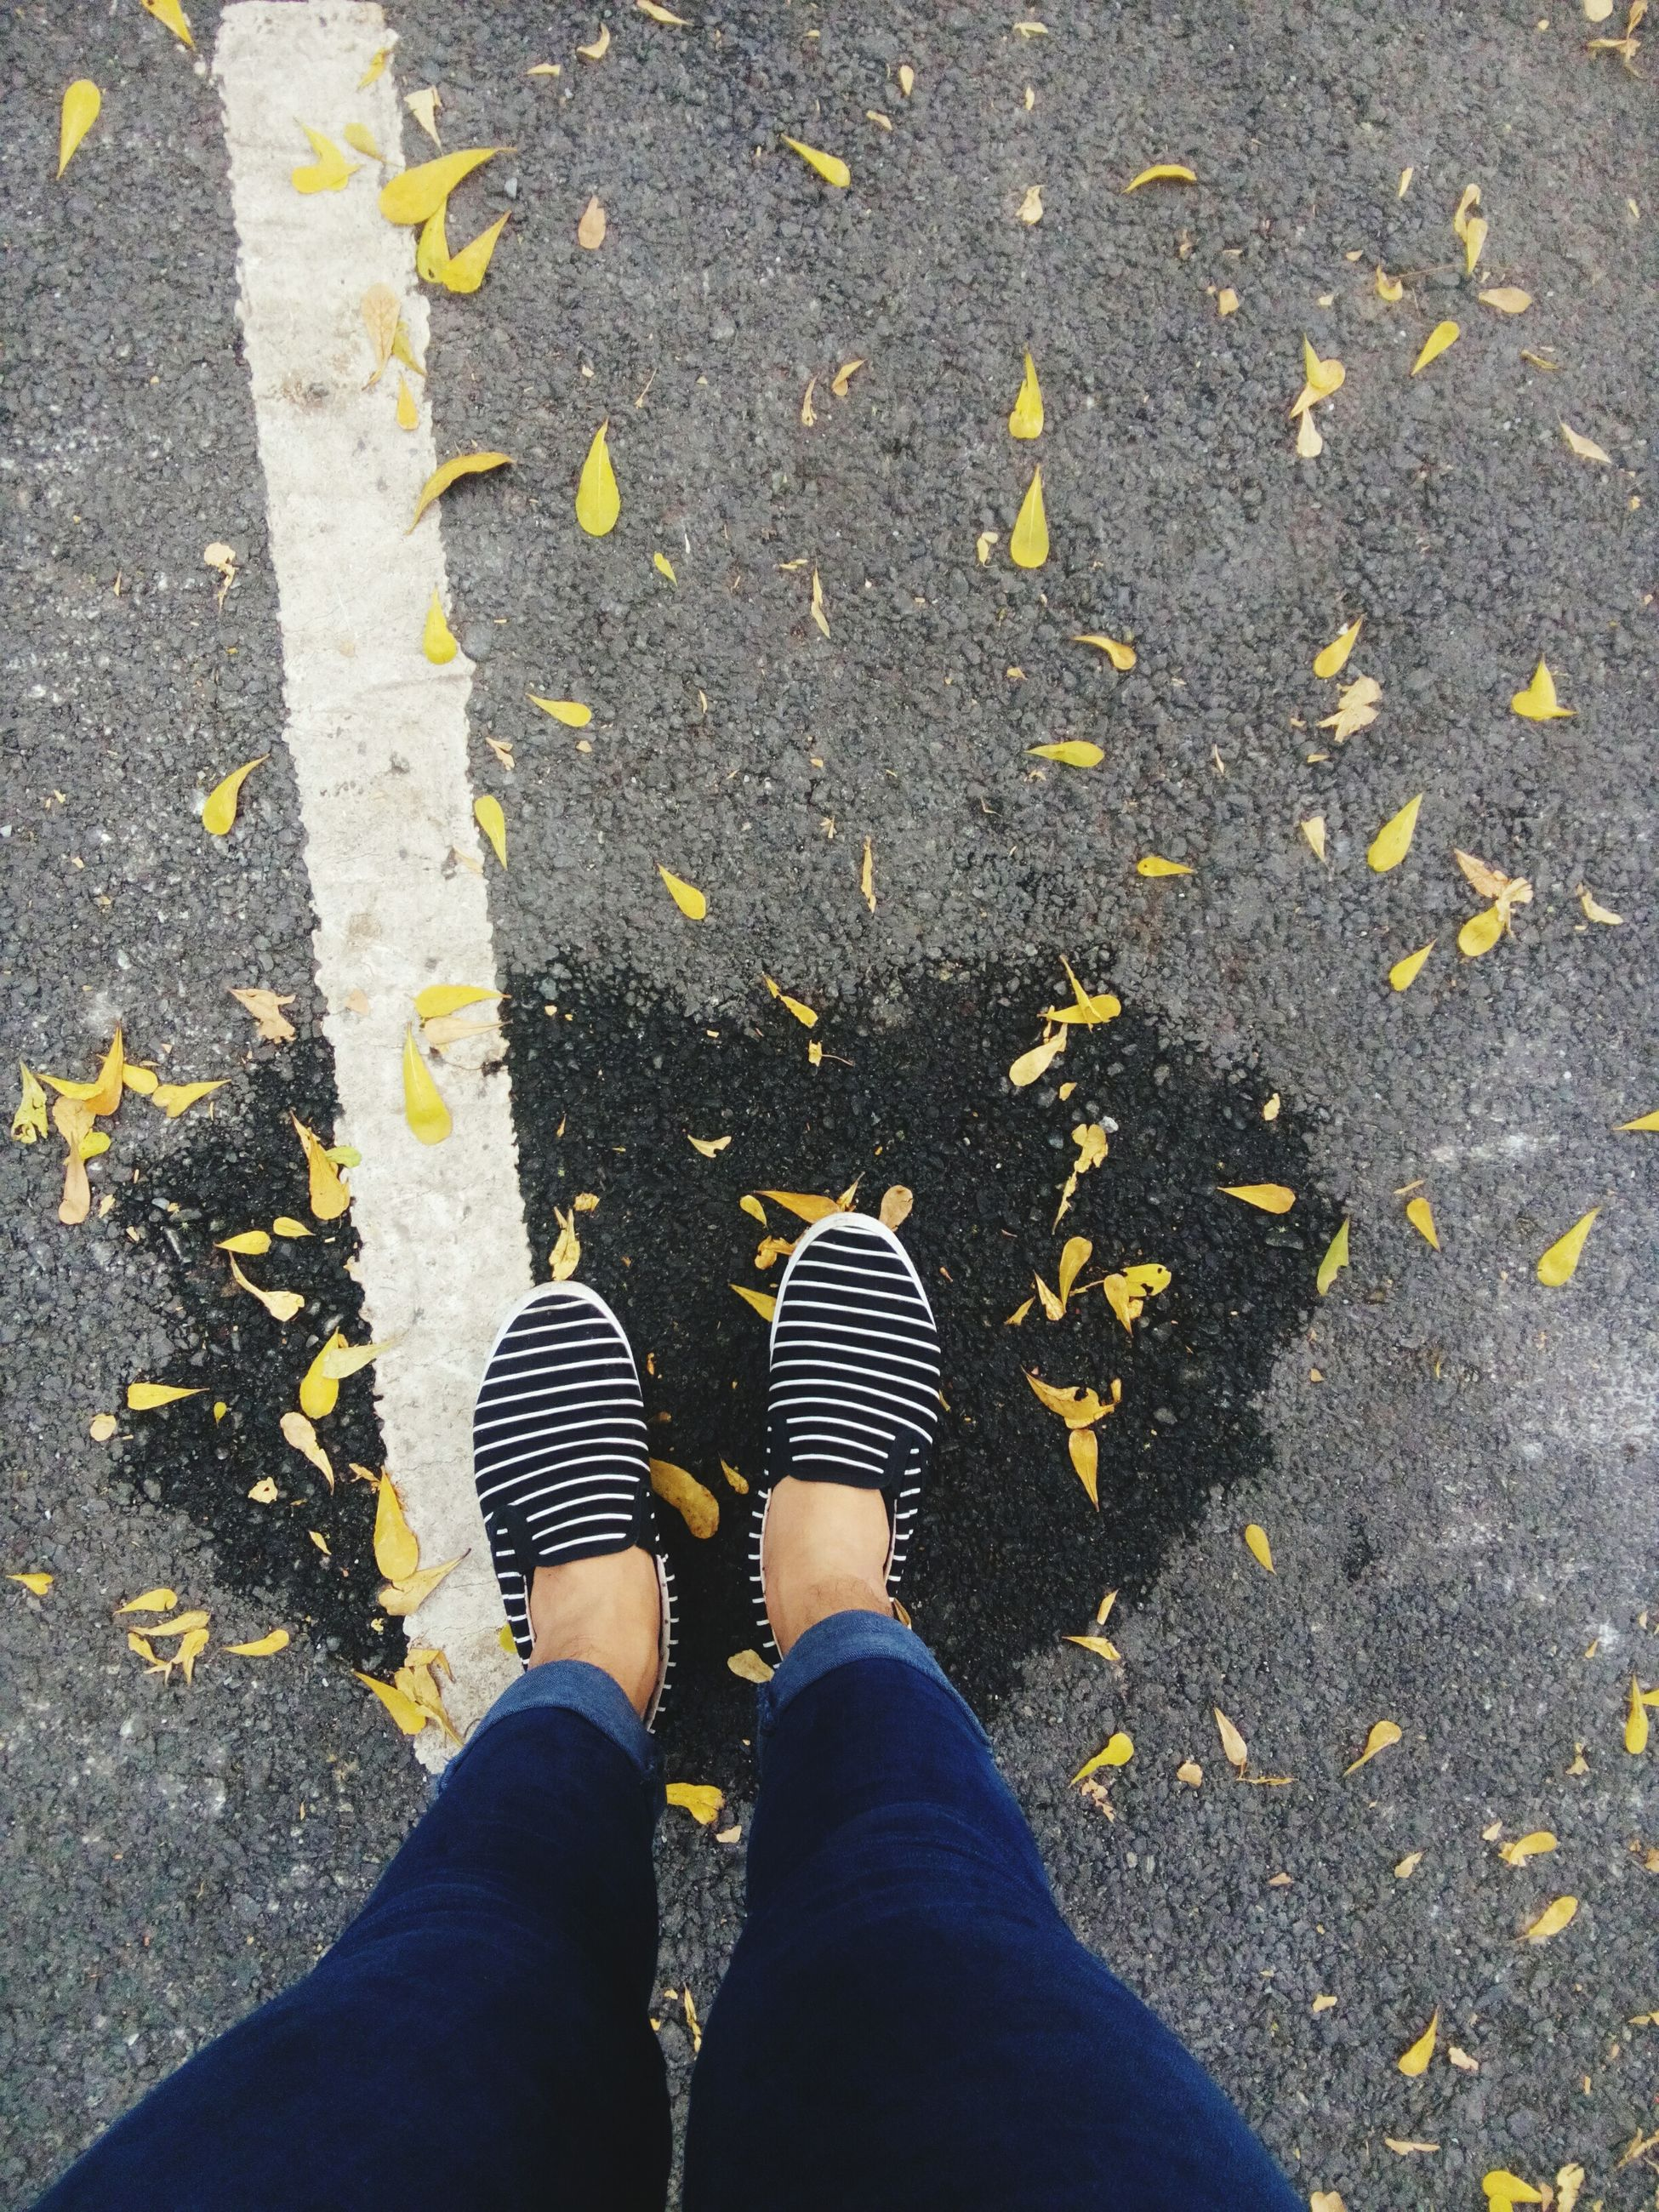 low section, person, personal perspective, high angle view, shoe, standing, lifestyles, street, leisure activity, road, unrecognizable person, men, human foot, asphalt, footwear, leaf, directly above